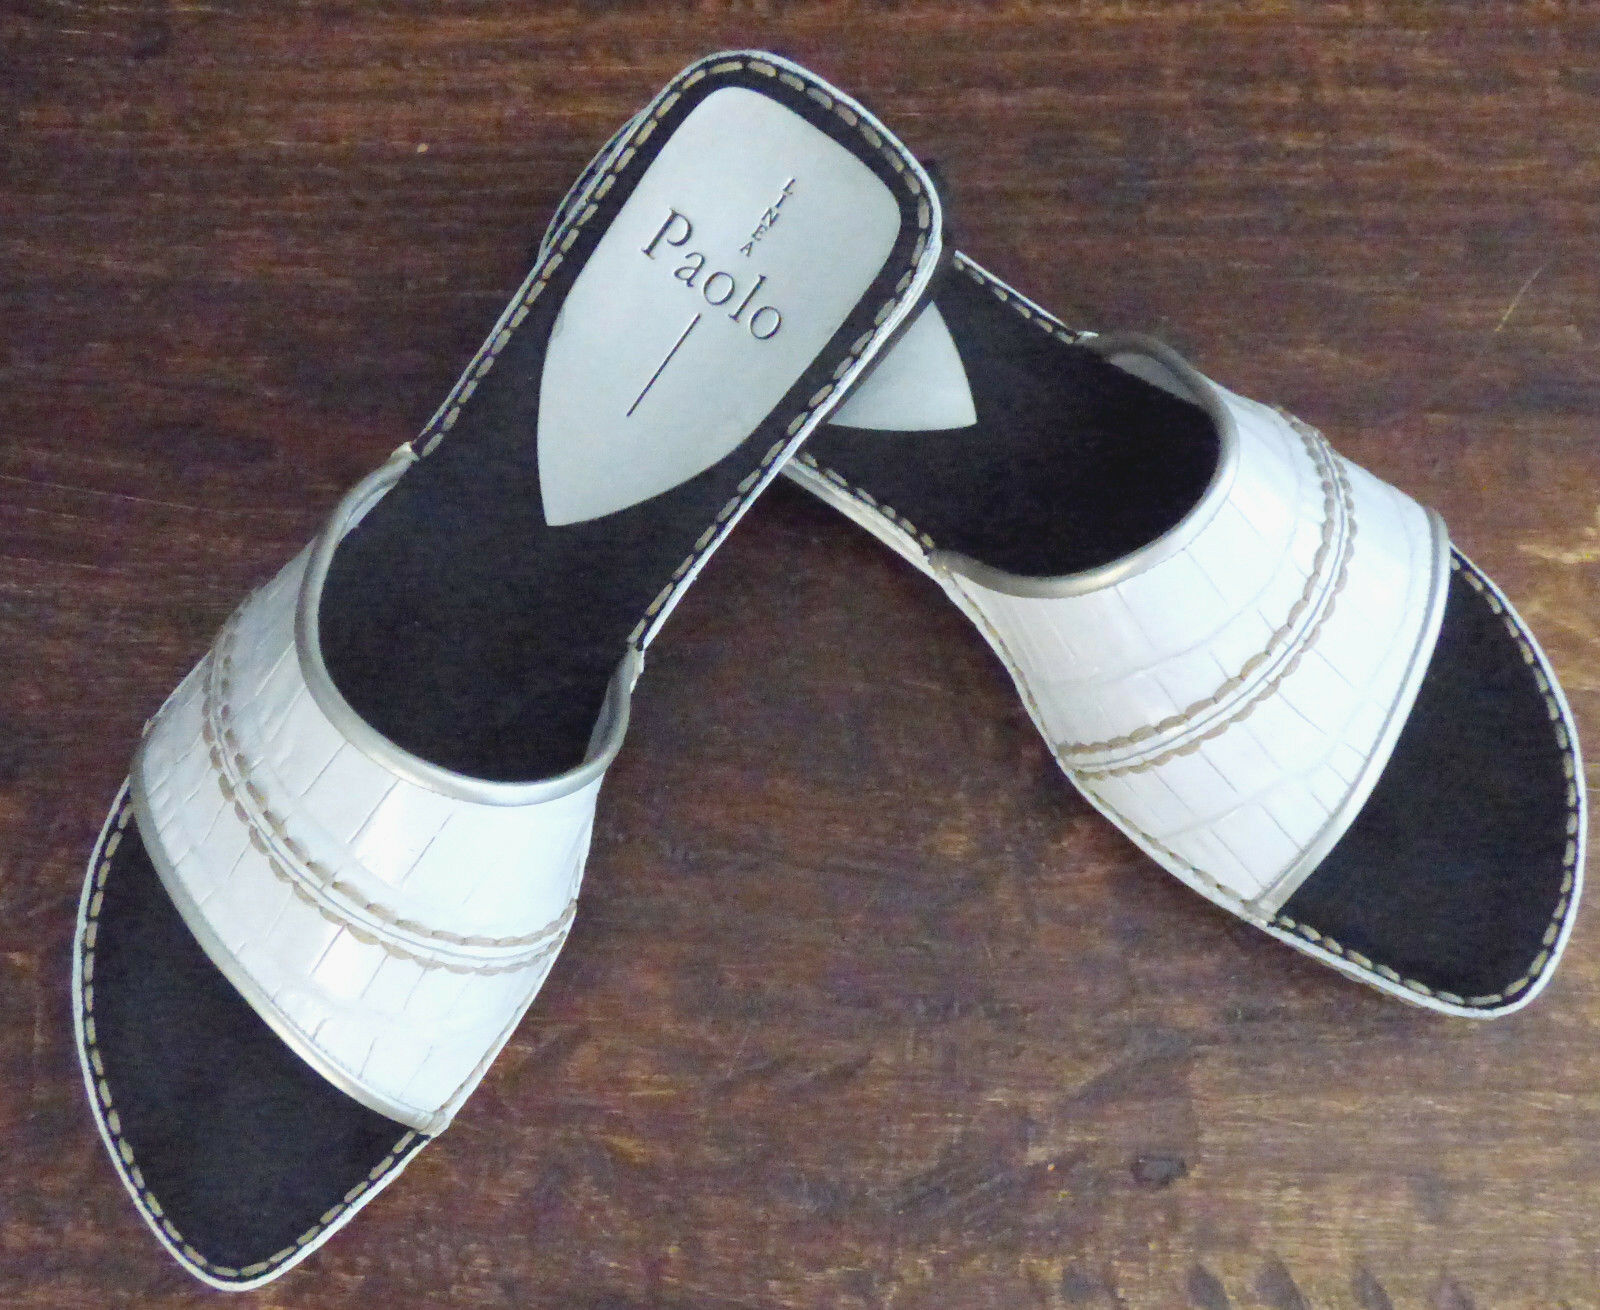 ** LINEA PAOLO ** White Leather Rubber Grip Sole Sole Sole Mule Slides Size 8 398208